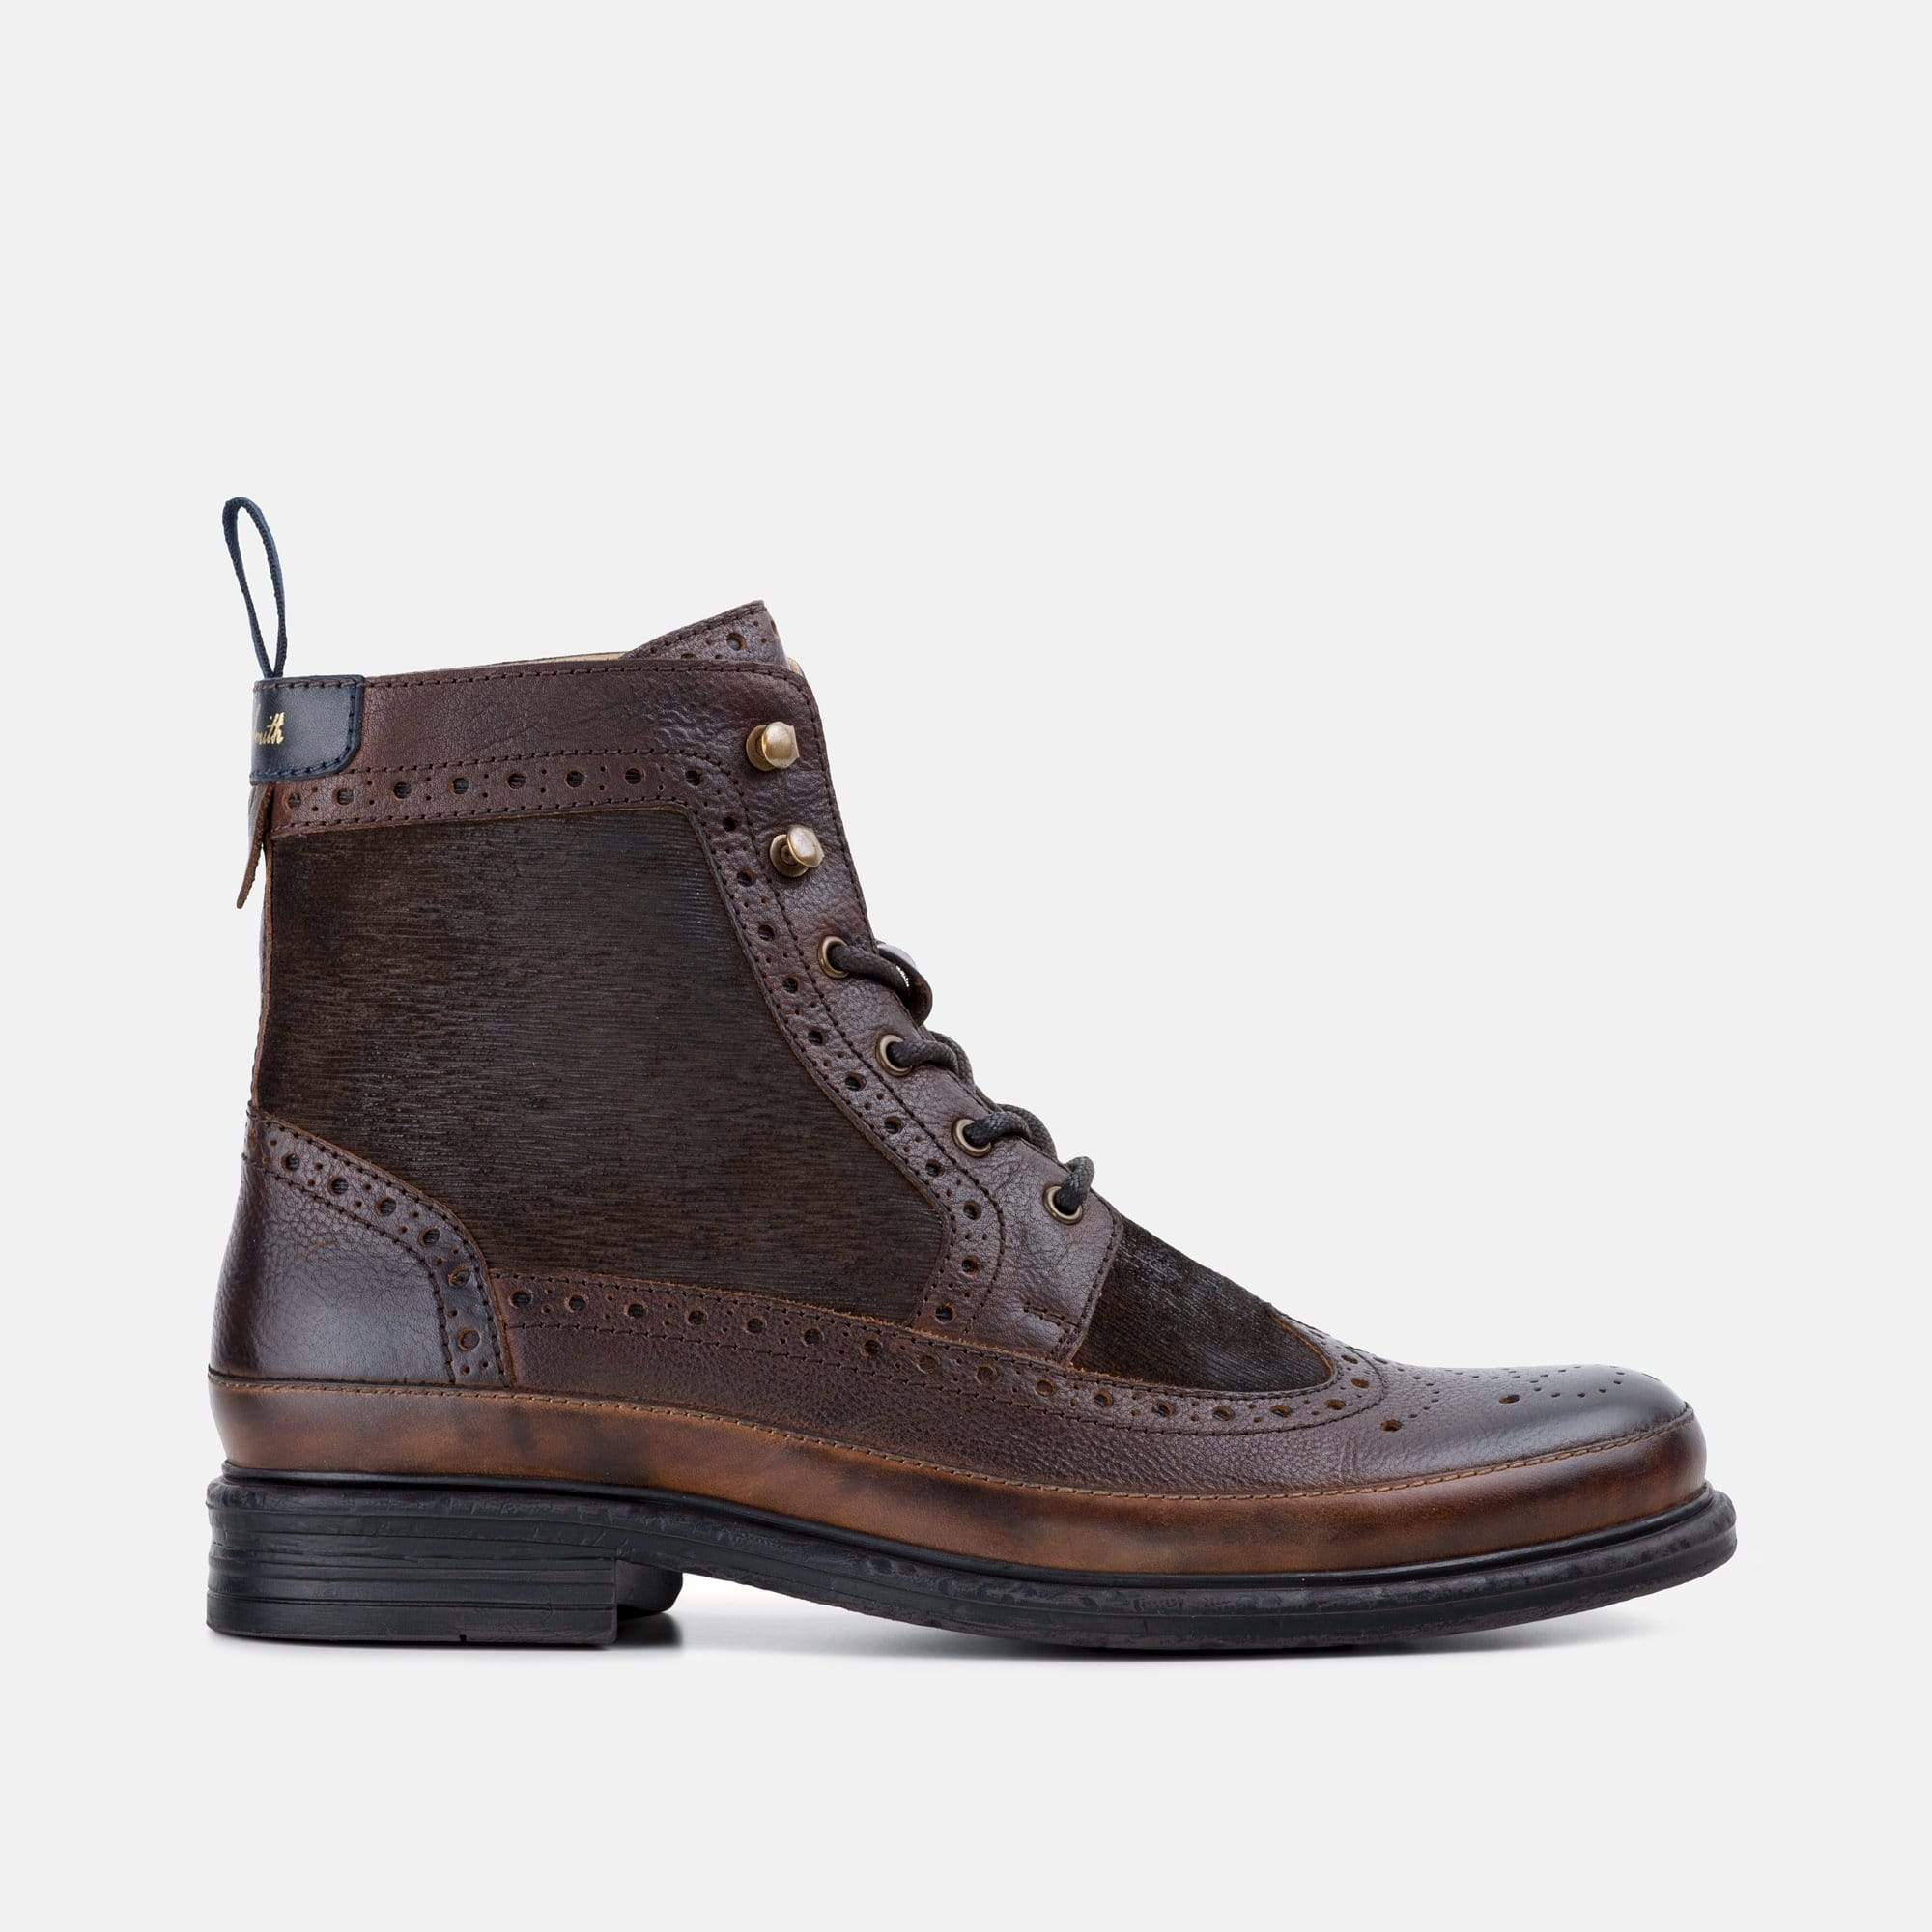 Goodwin Smith Footwear AW19 MEN'S ROWAN BROWN BROGUE BOOT